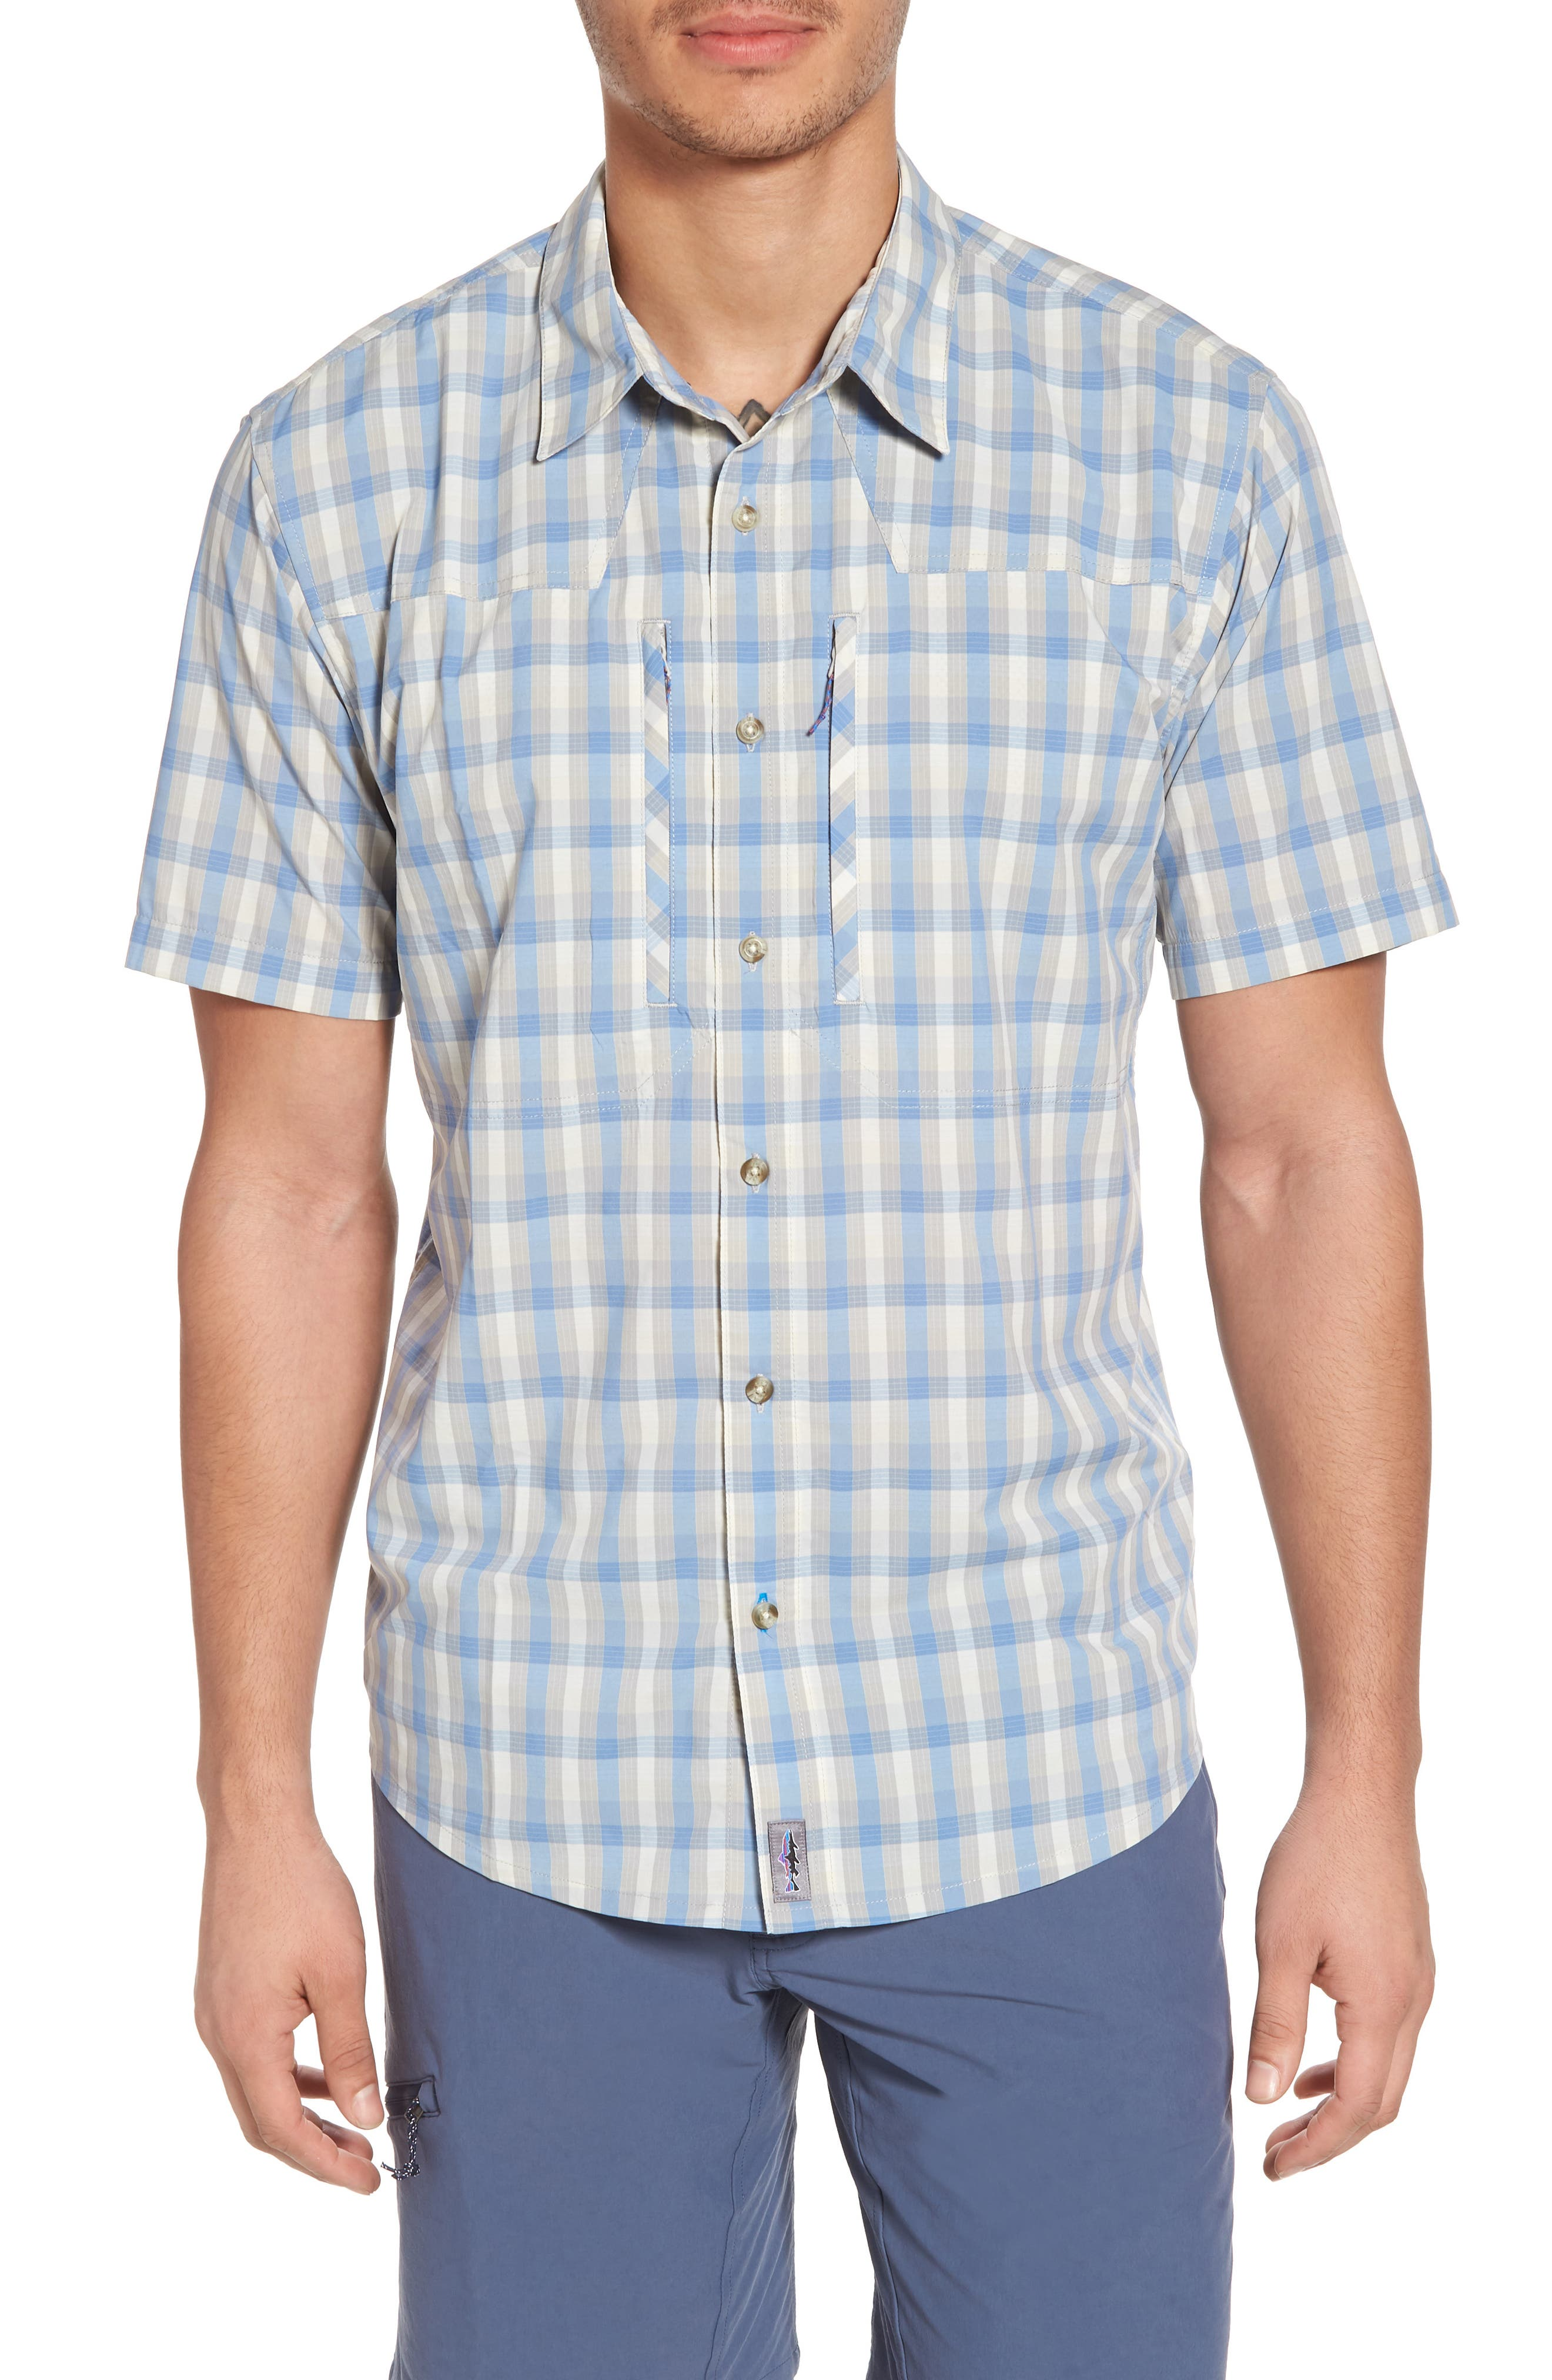 M's Sun Plaid Stretch Hybrid Shirt,                             Main thumbnail 1, color,                             Mauro Railroad Blue